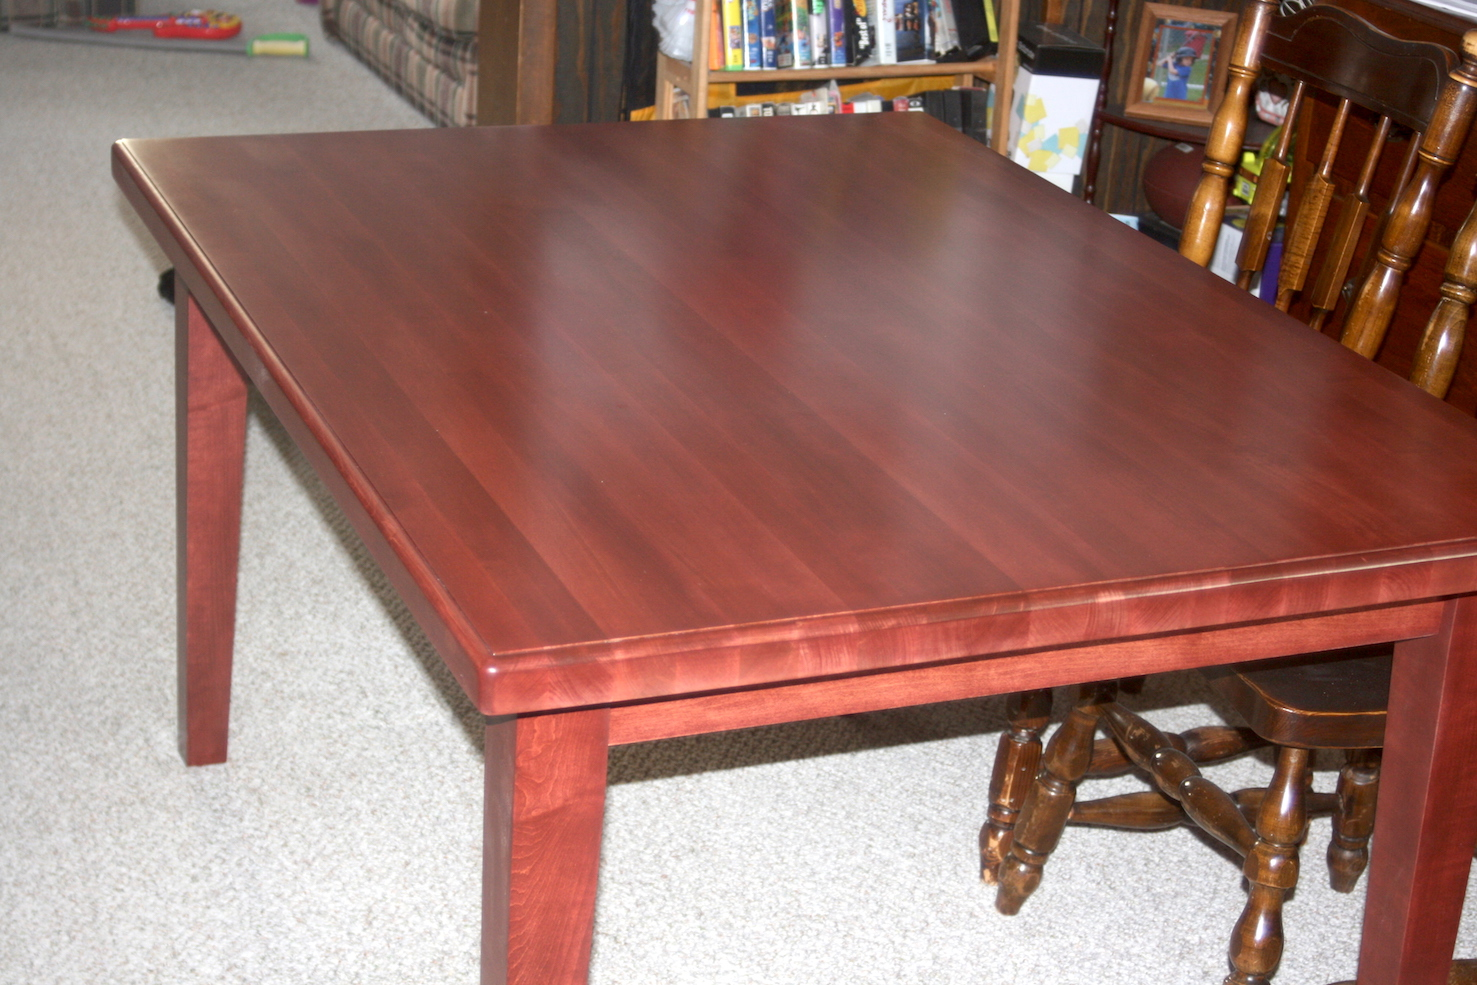 Maple Table w/ Deep Cherry Stain